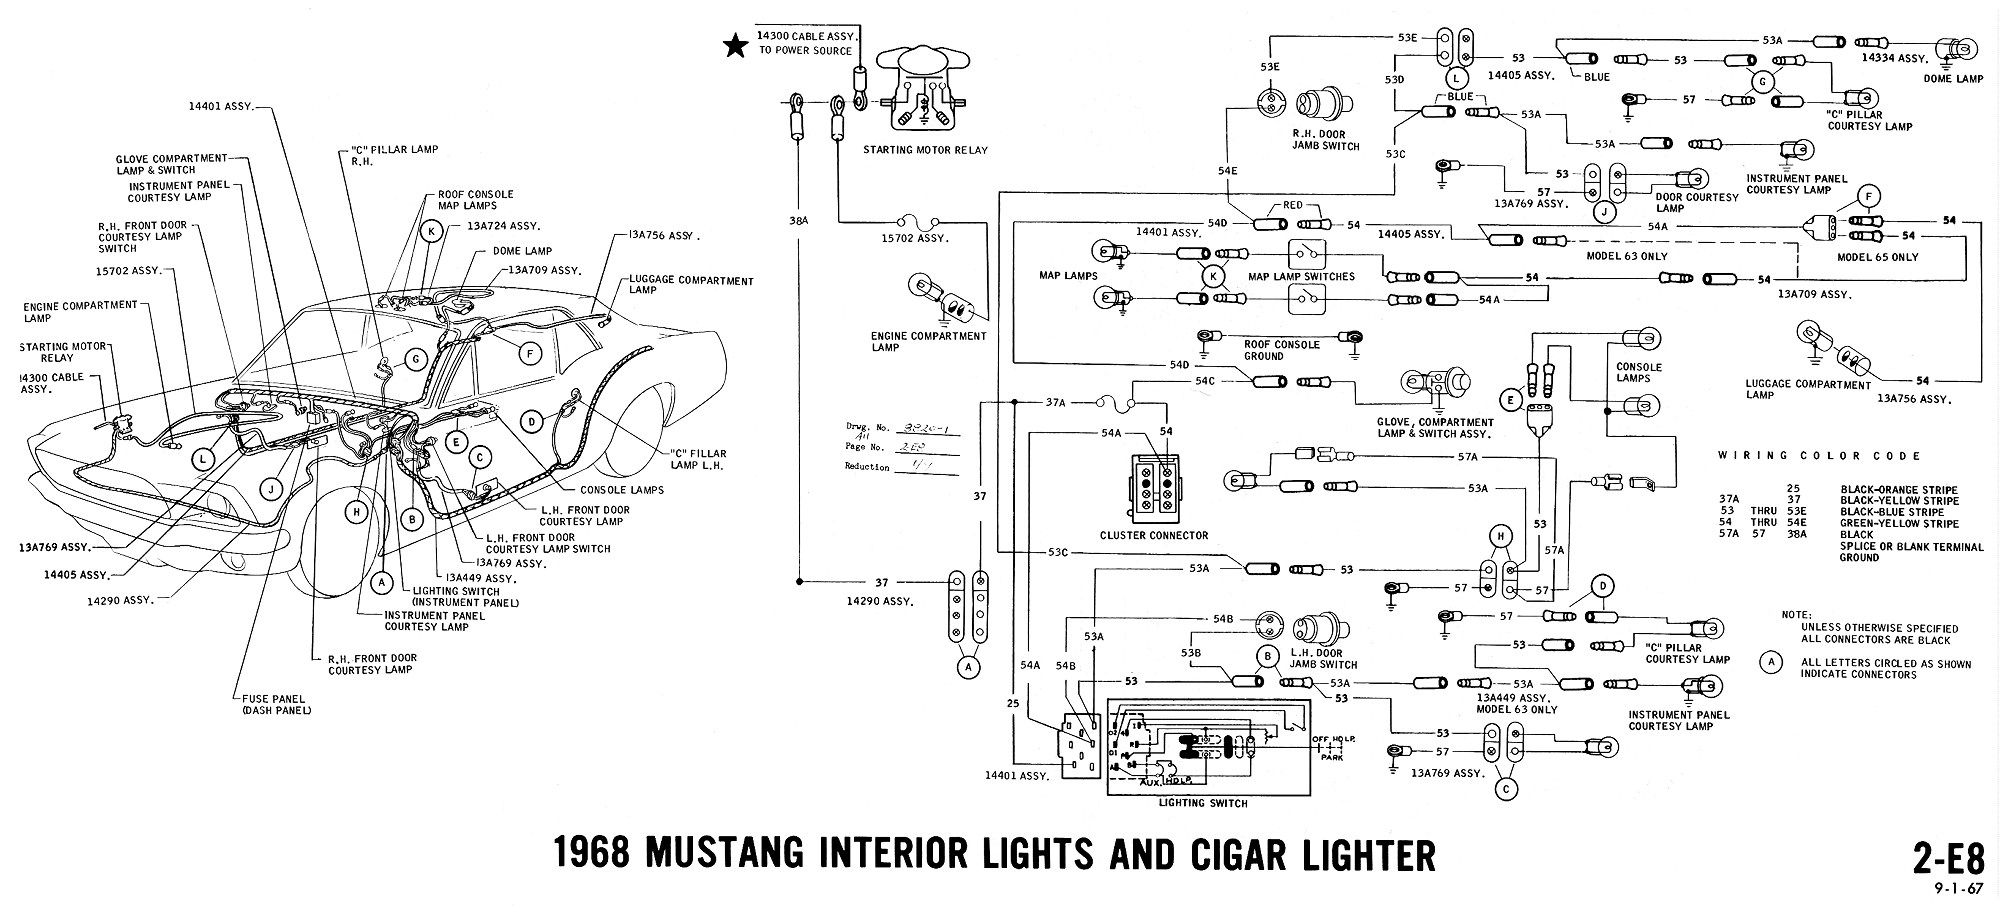 1966 mustang dash light wiring diagram 3 phase roller door 66 under color code free engine